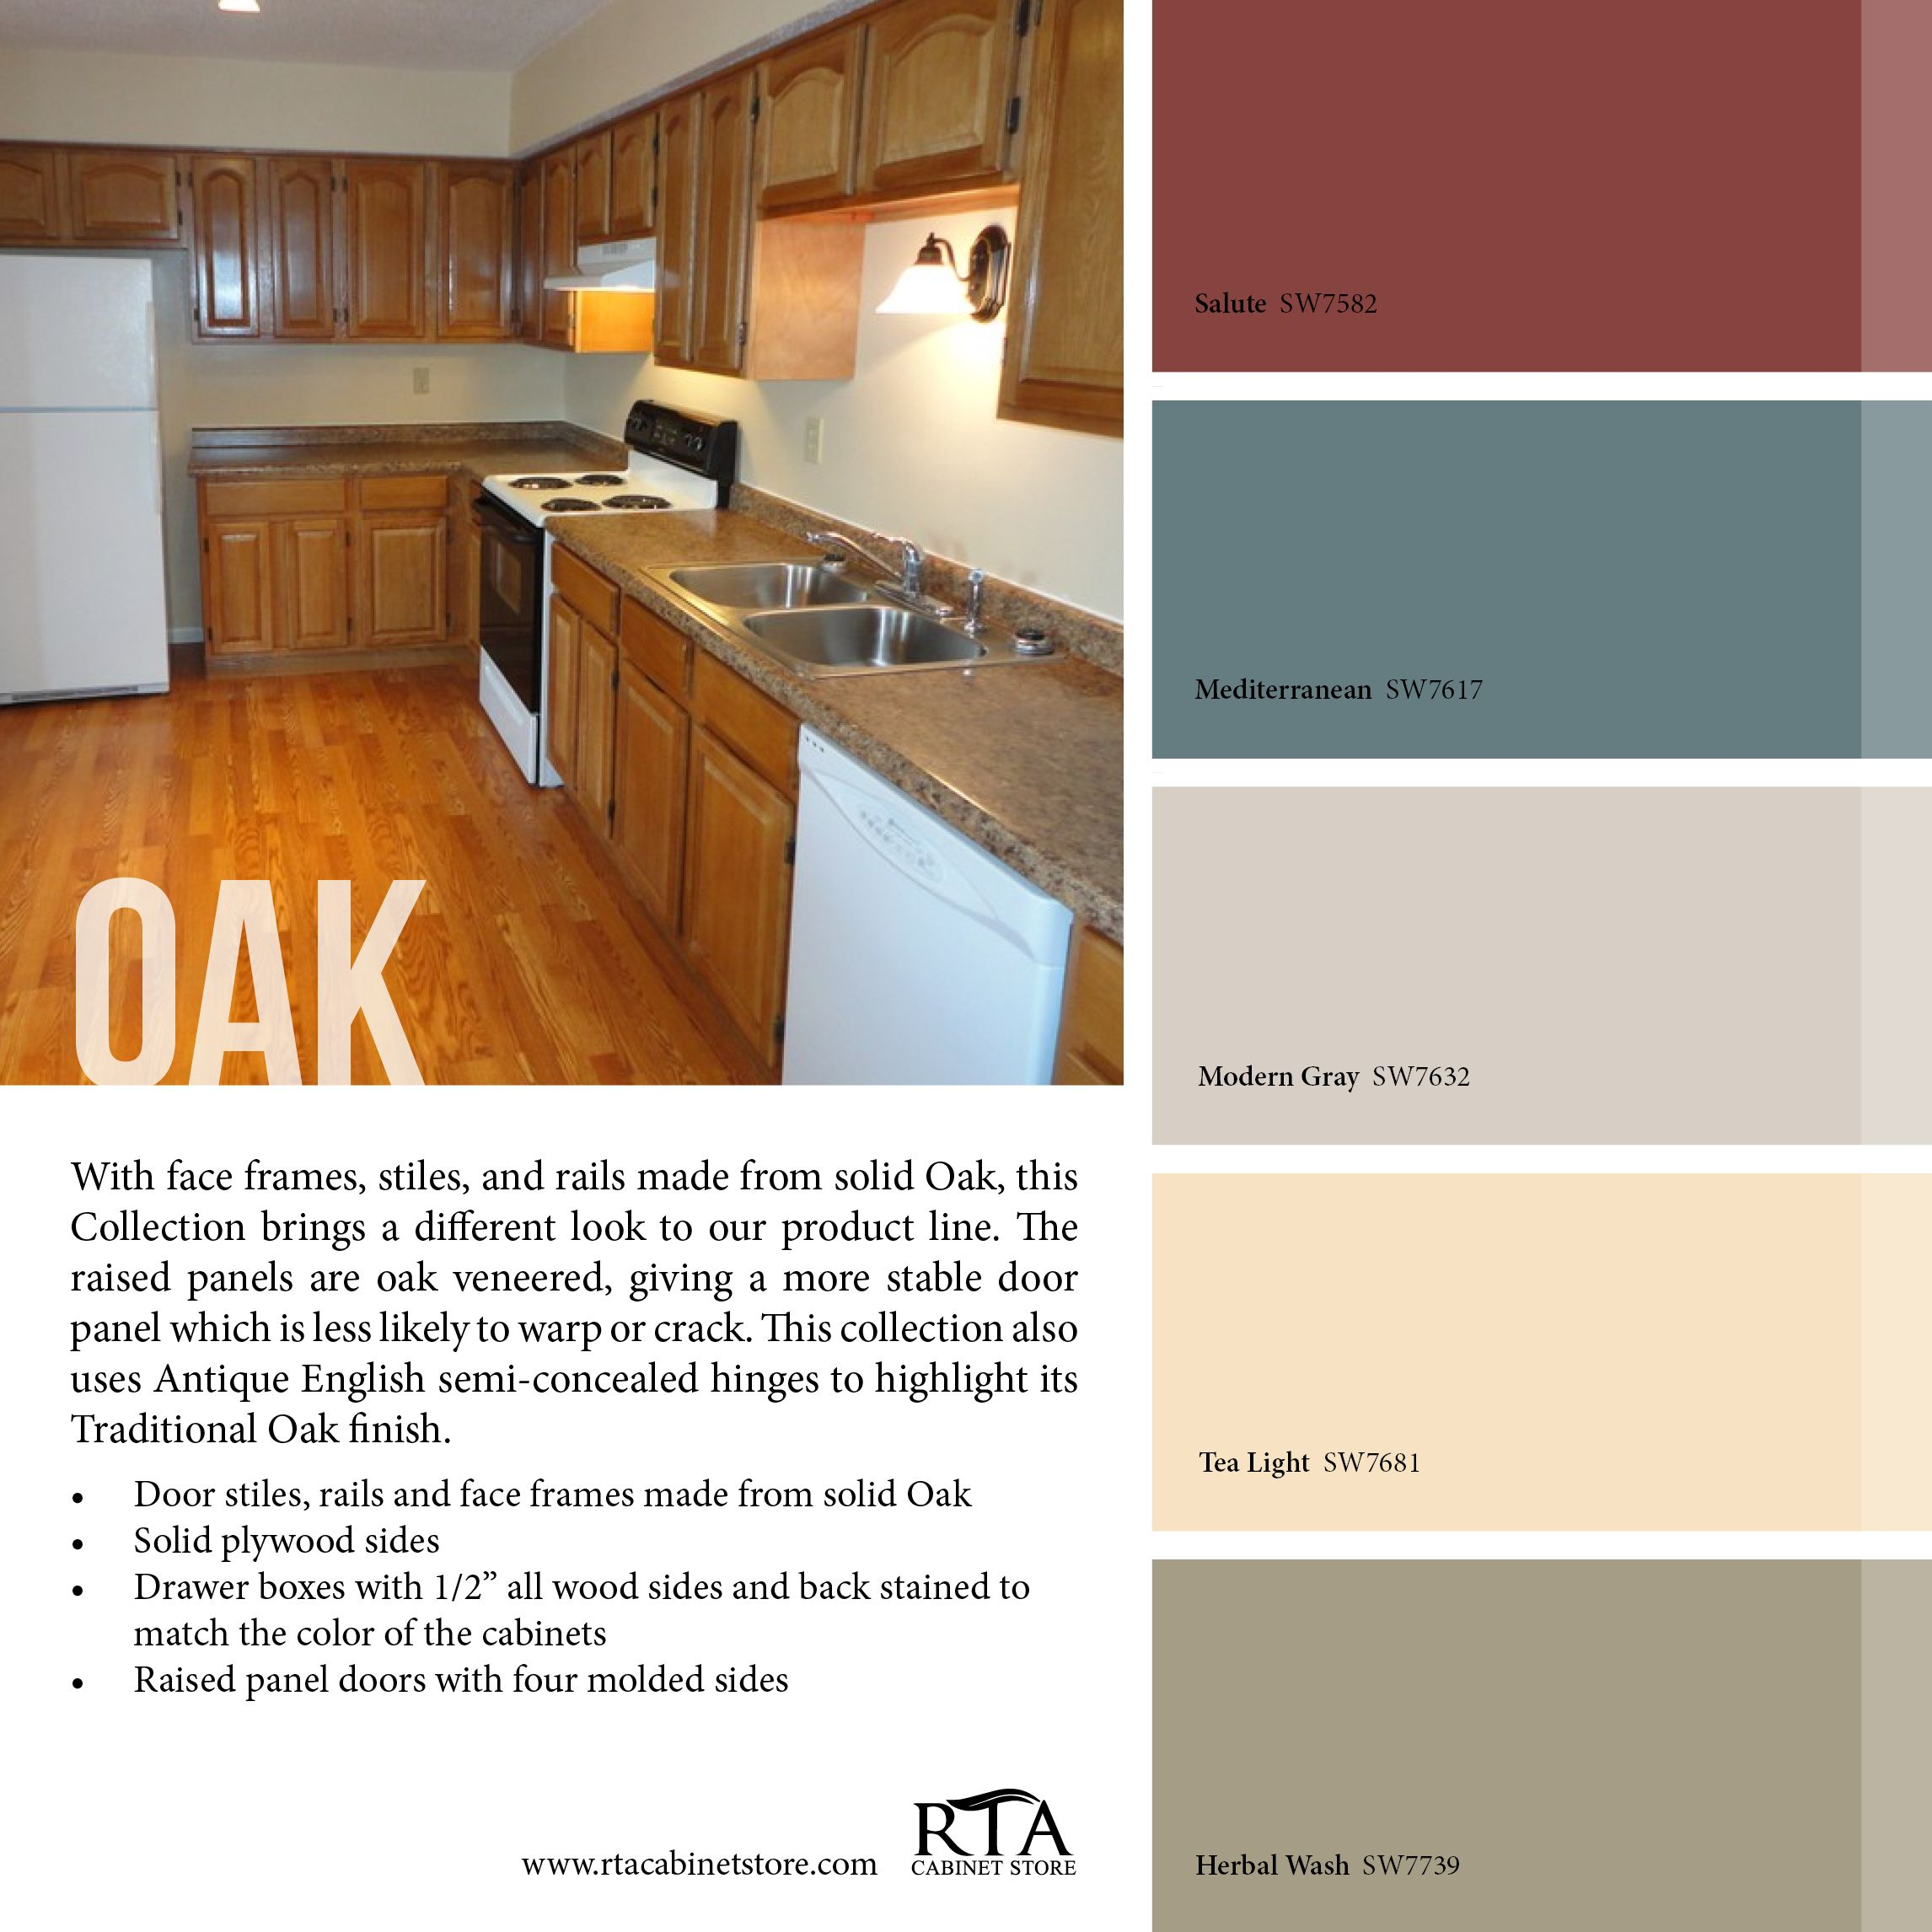 Kitchen To Go Hood Vent Color Palette With Oak Cabinet Line For Those